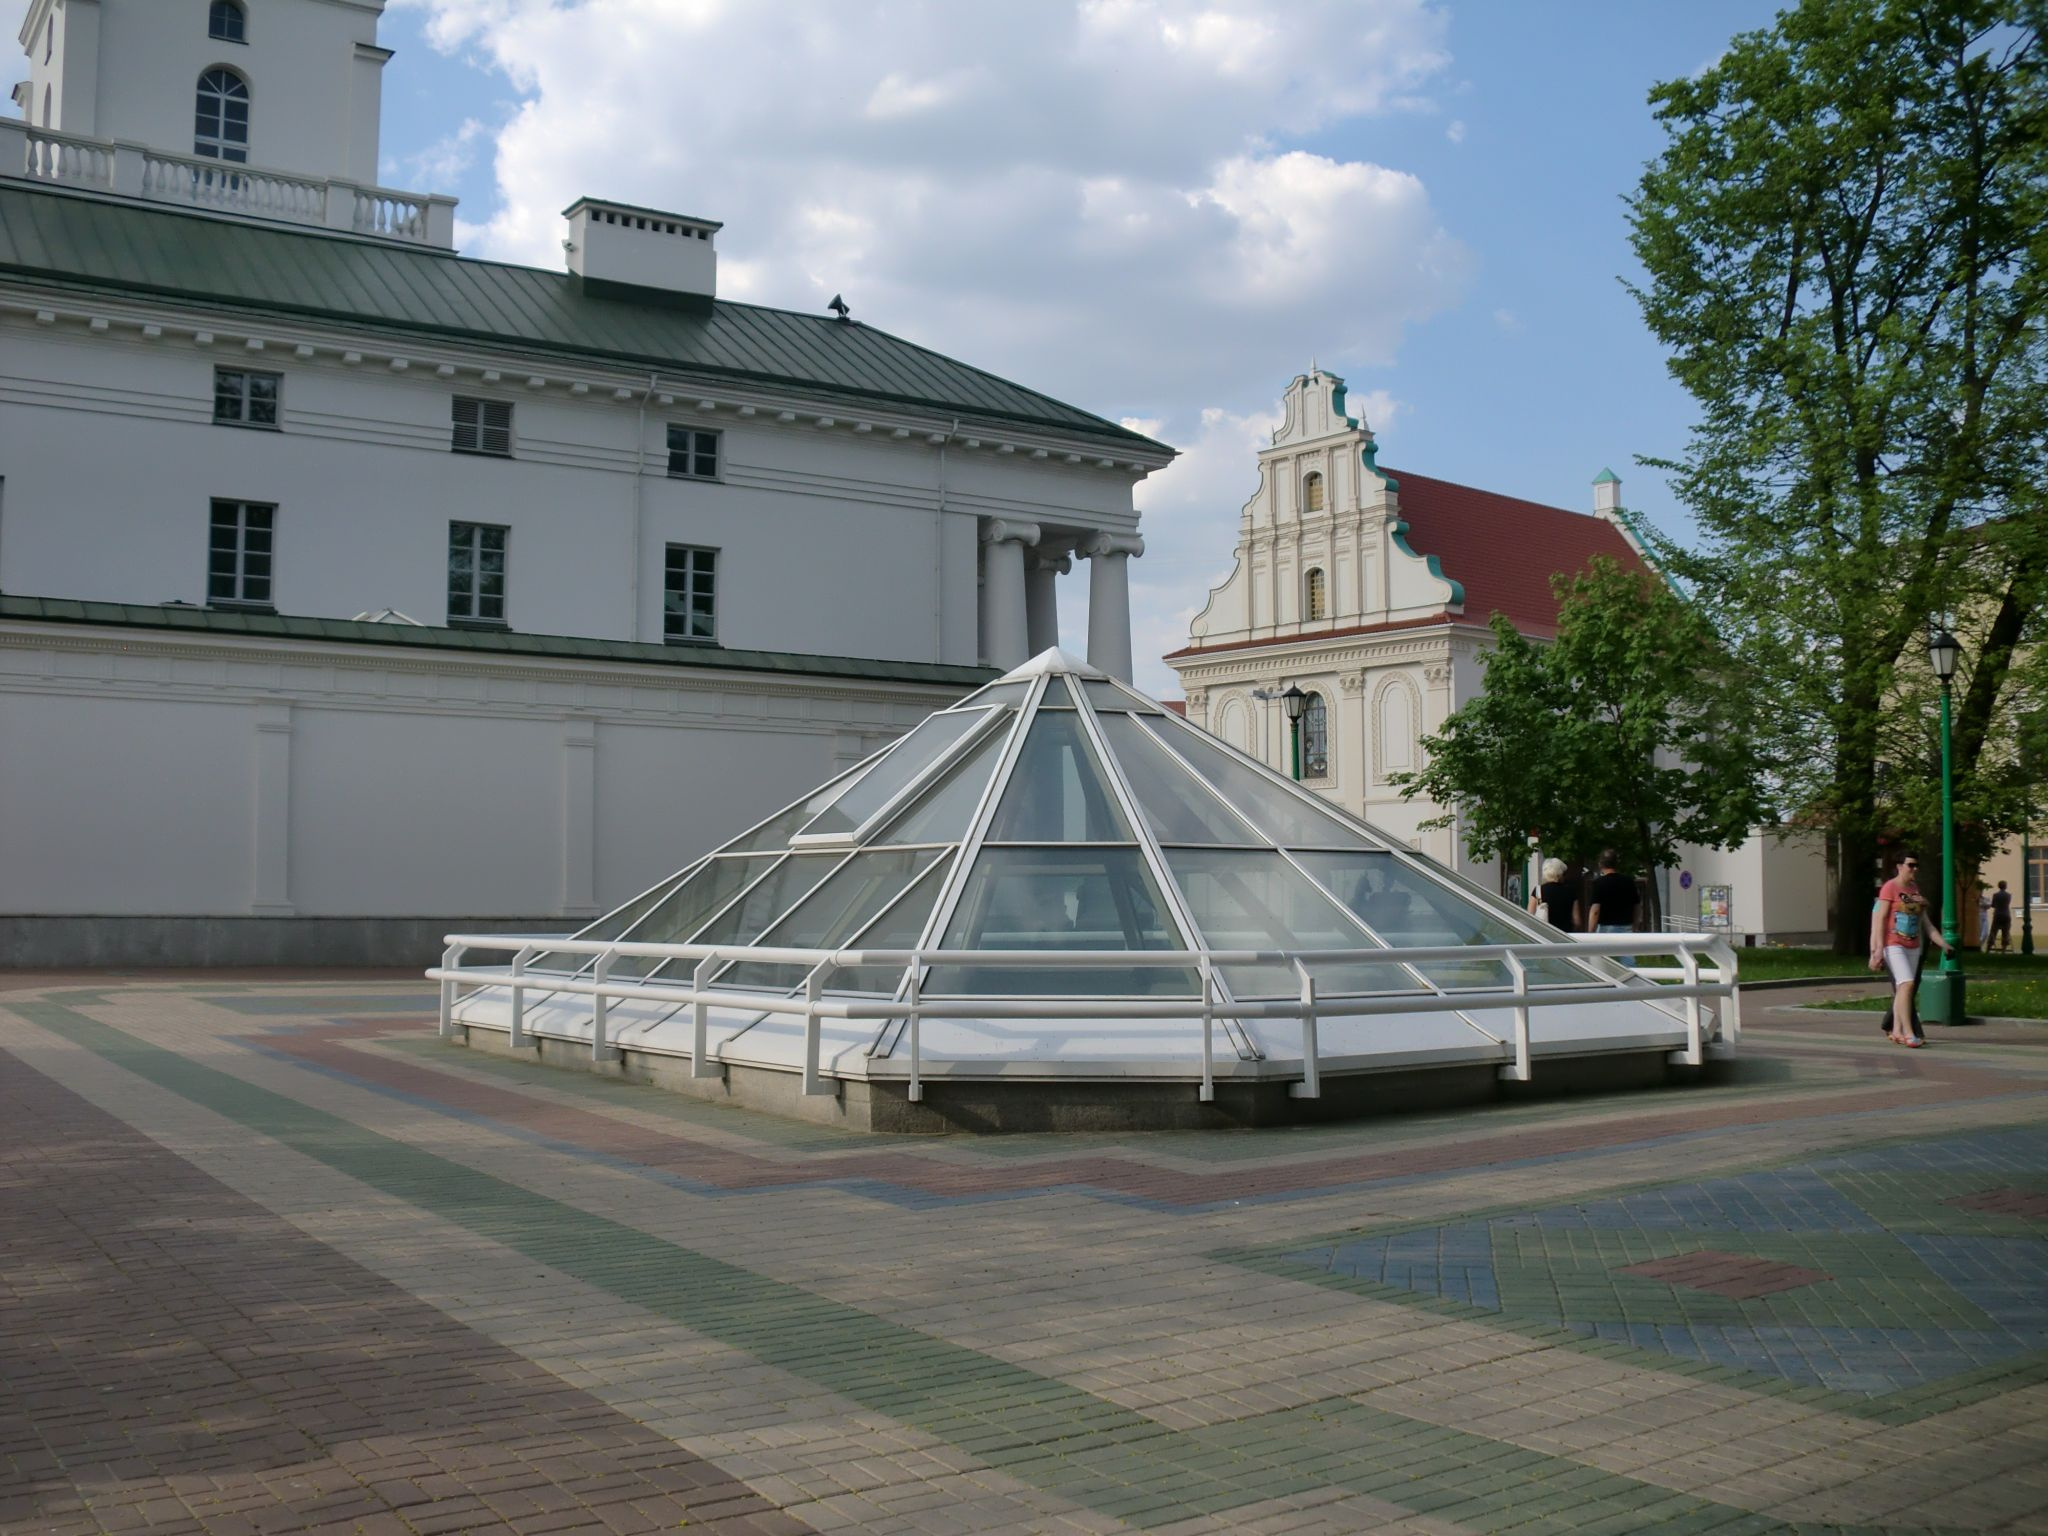 Minsk old town 5 1 - Minsk, 1 amazing city you have to see